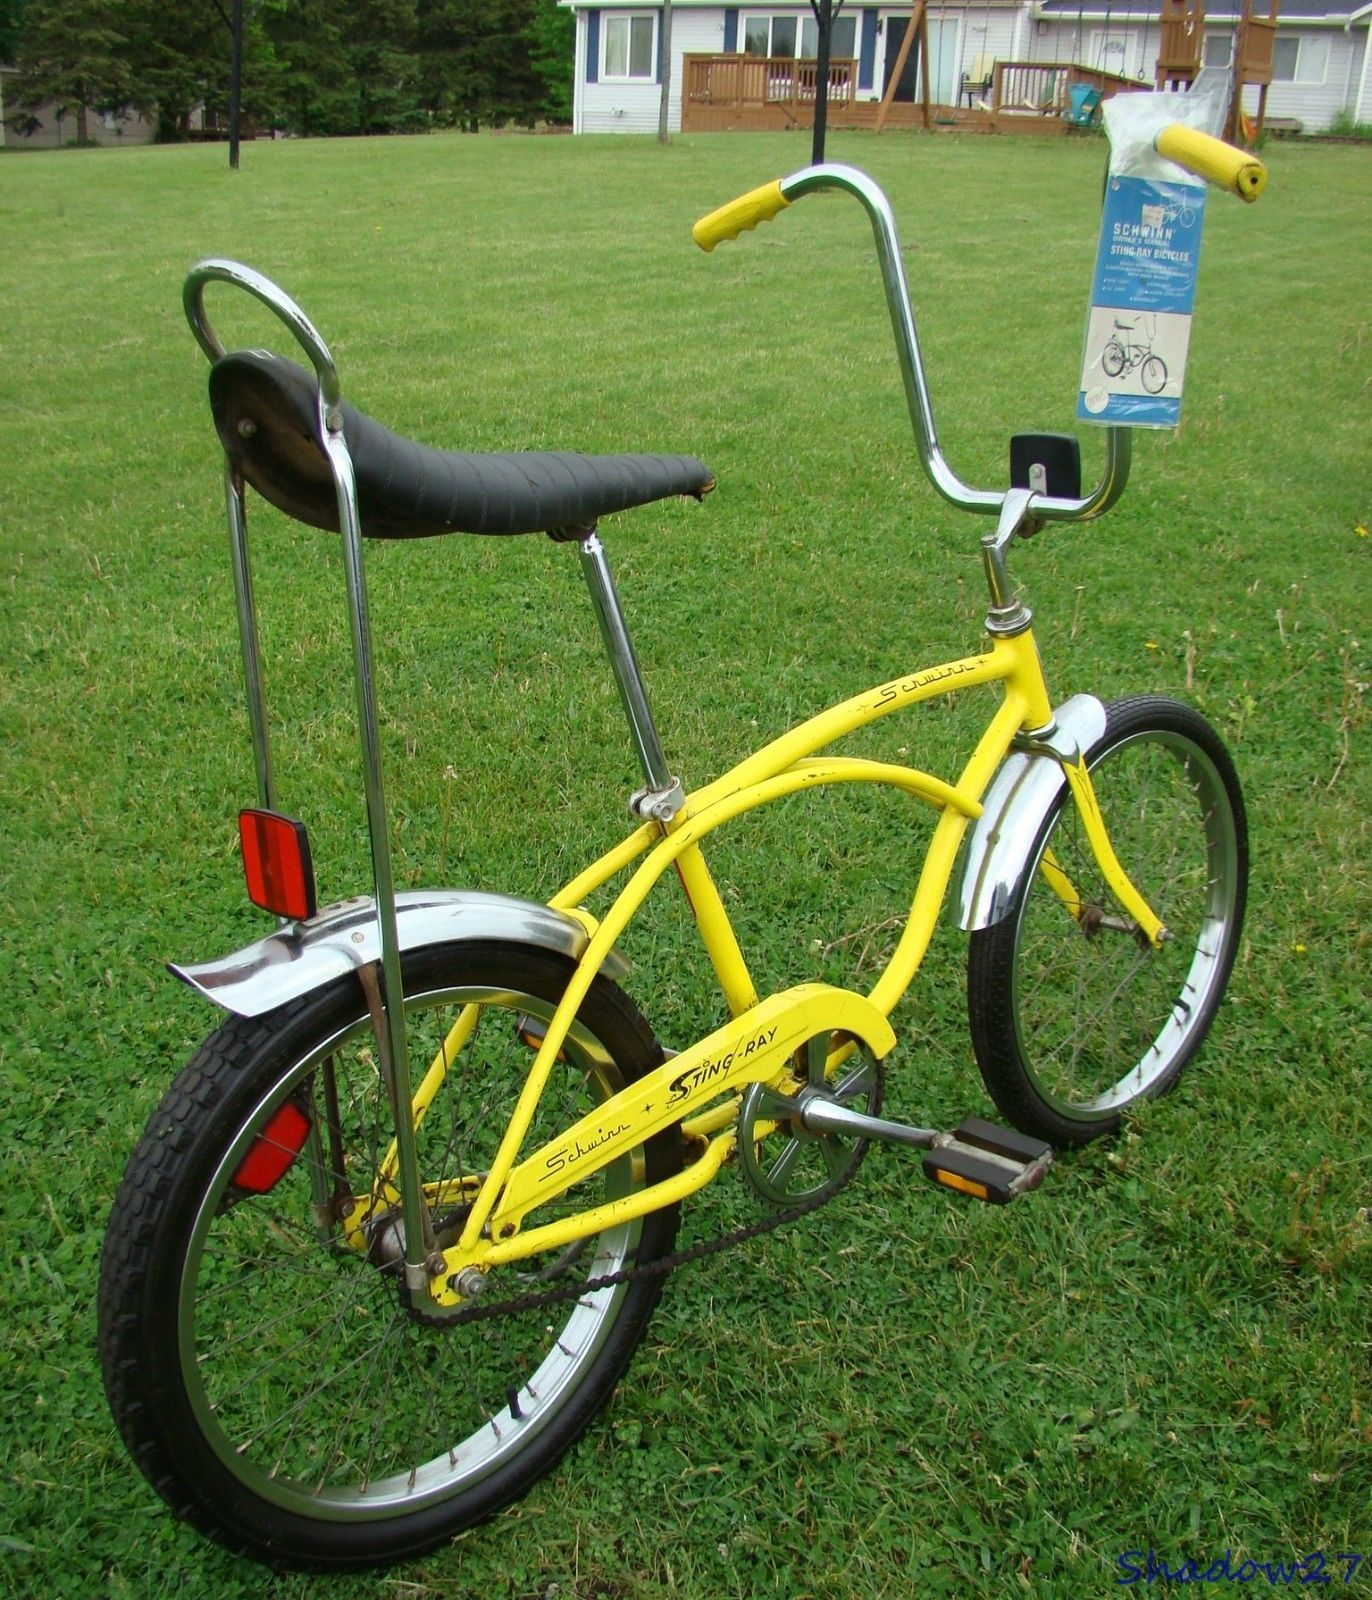 61a64d41c4d 1975 SCHWINN STINGRAY BANANA SEAT MUSCLE BICYCLE VINTAGE S7 KRATE LEMON  YELLOW